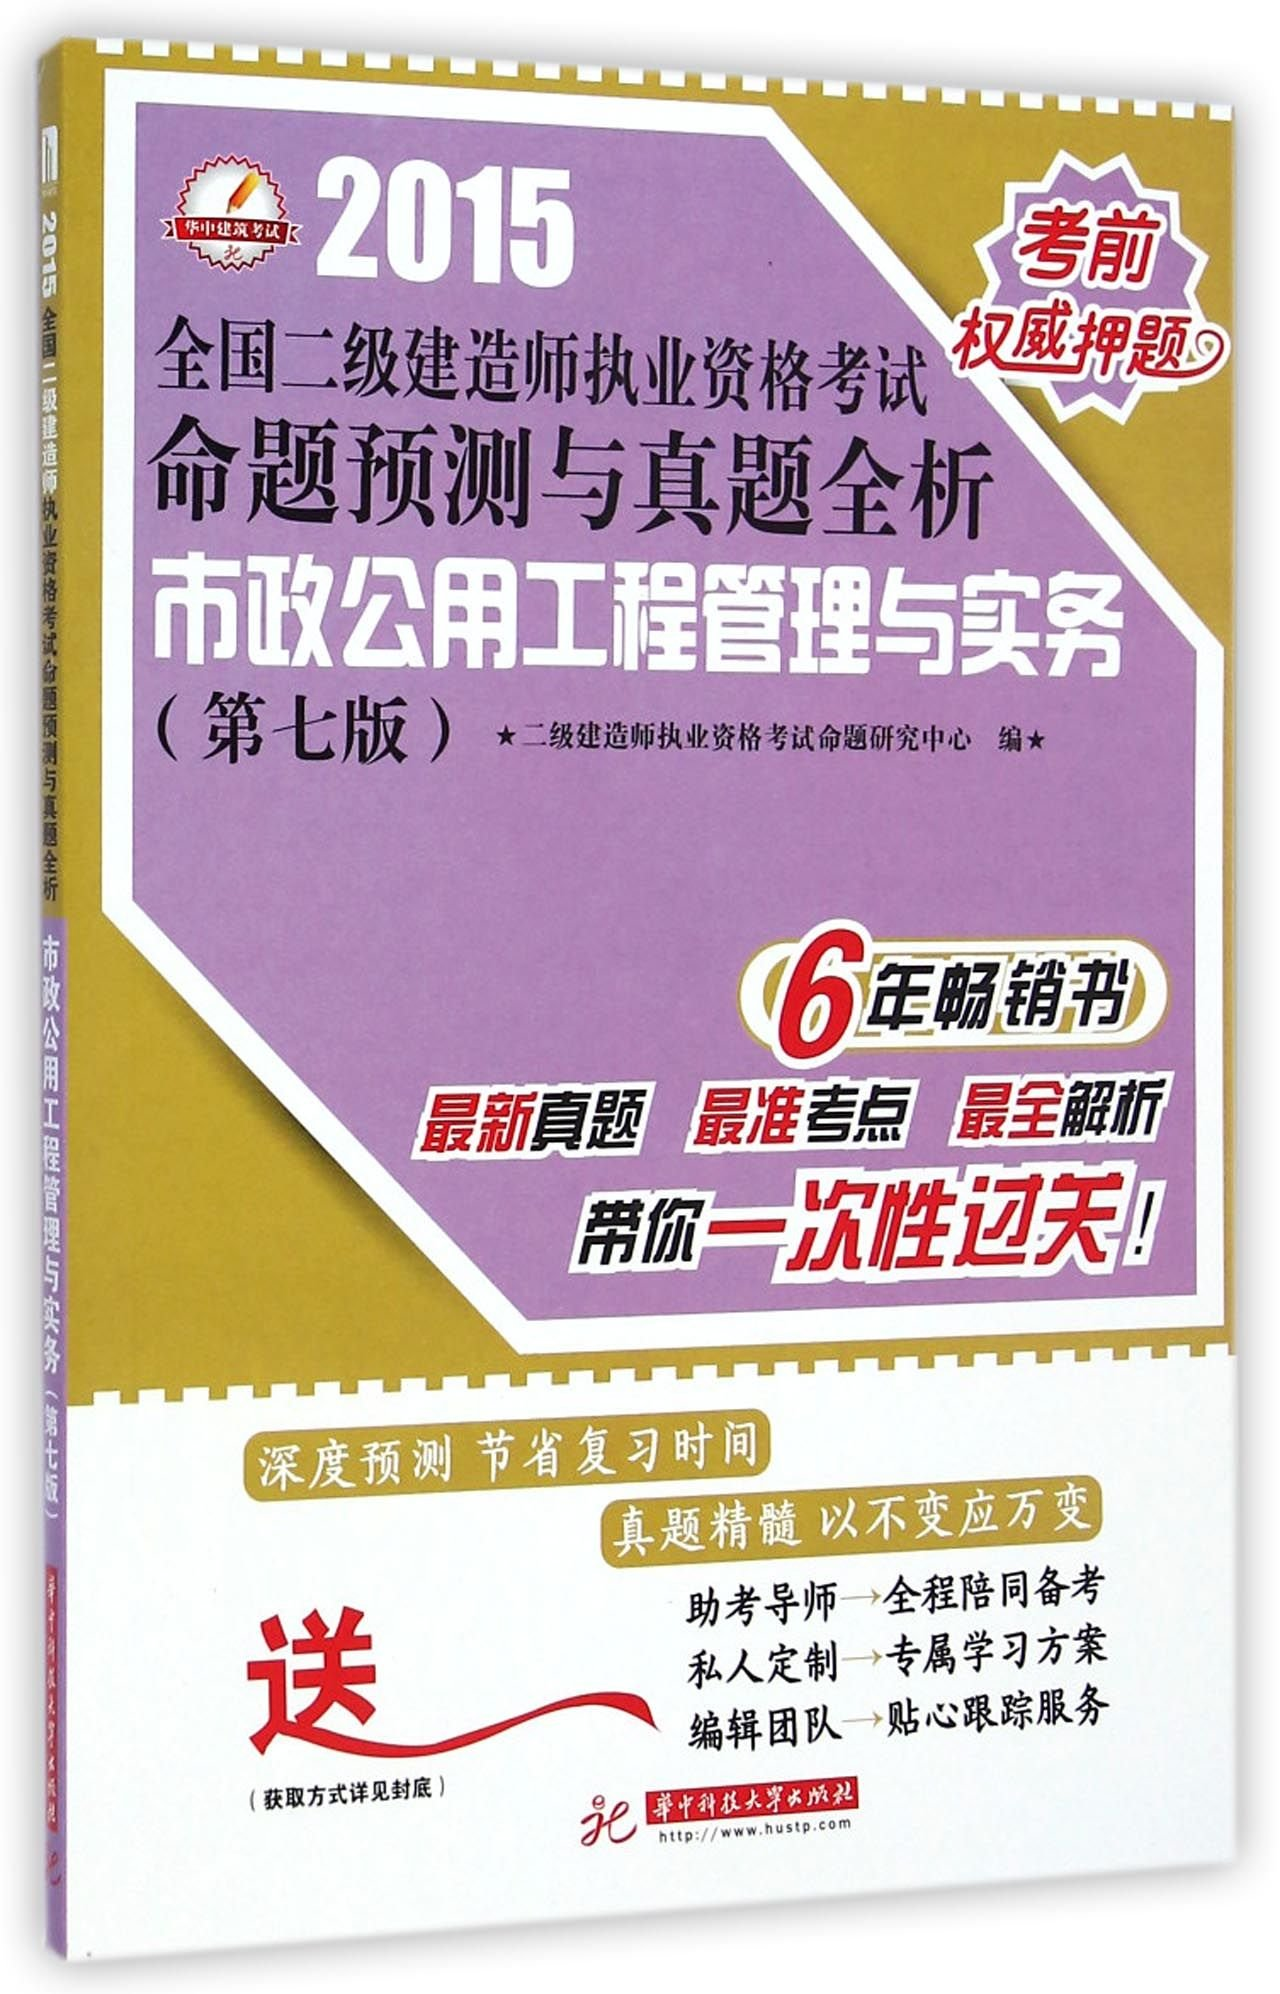 2015 National Qualification Exam build two propositions forecast and Zhenti full analysis: the municipal public works management and practice (7th Edition)(Chinese Edition) ebook